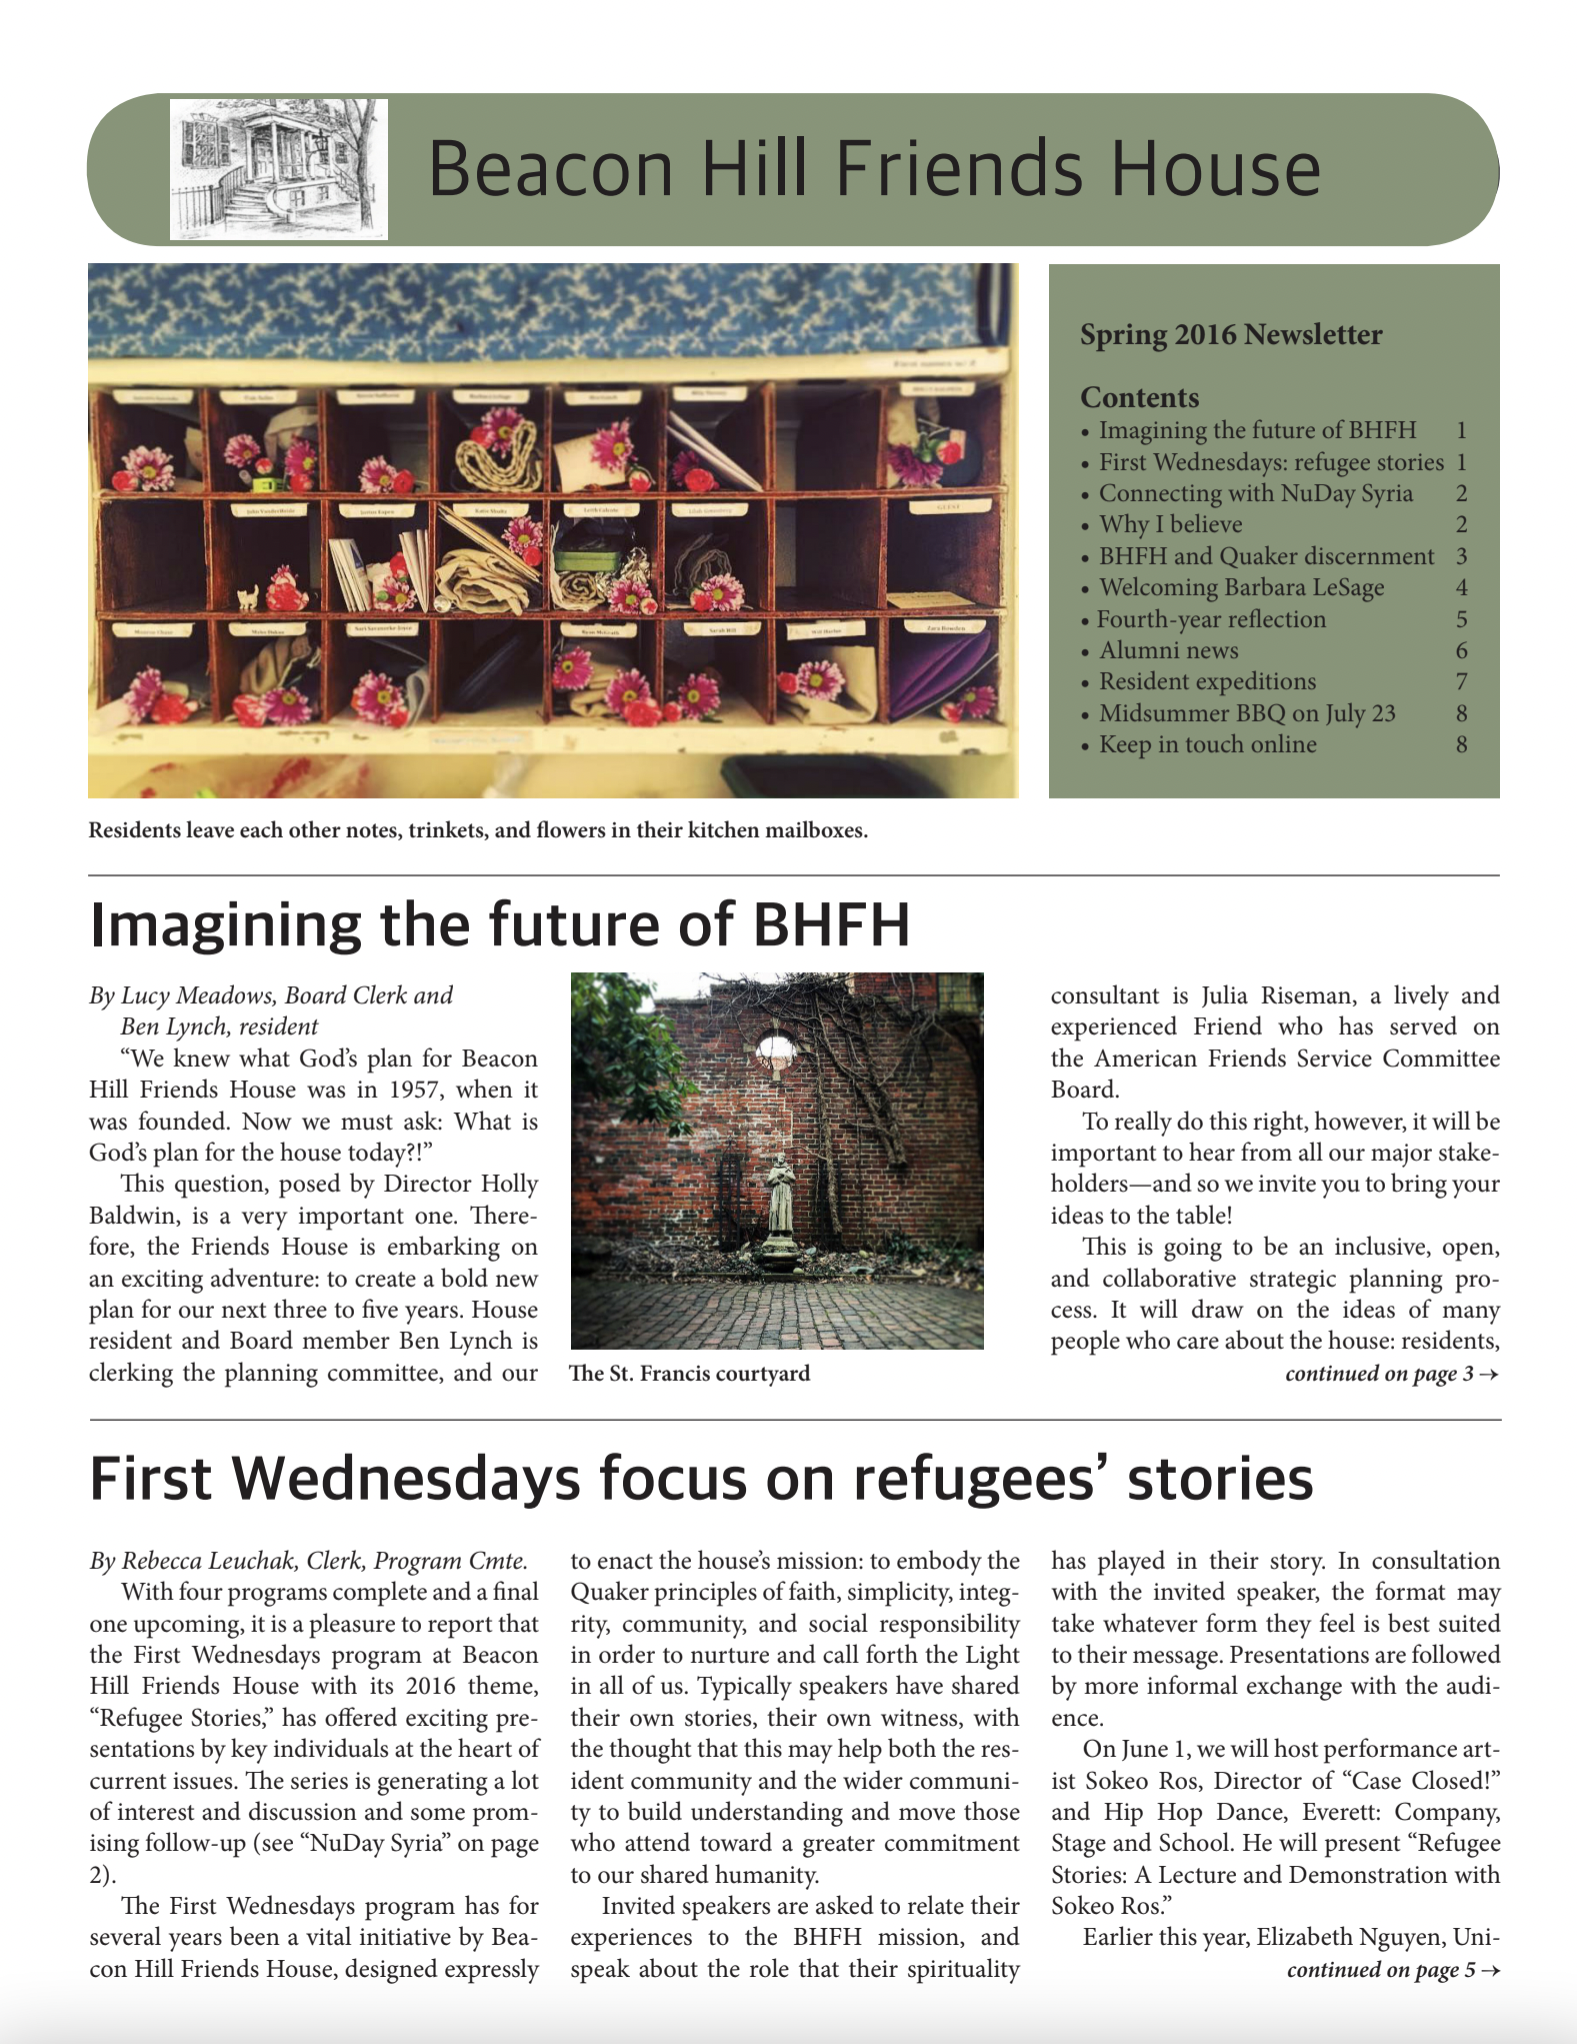 First page of spring/summer 2016 newsletter